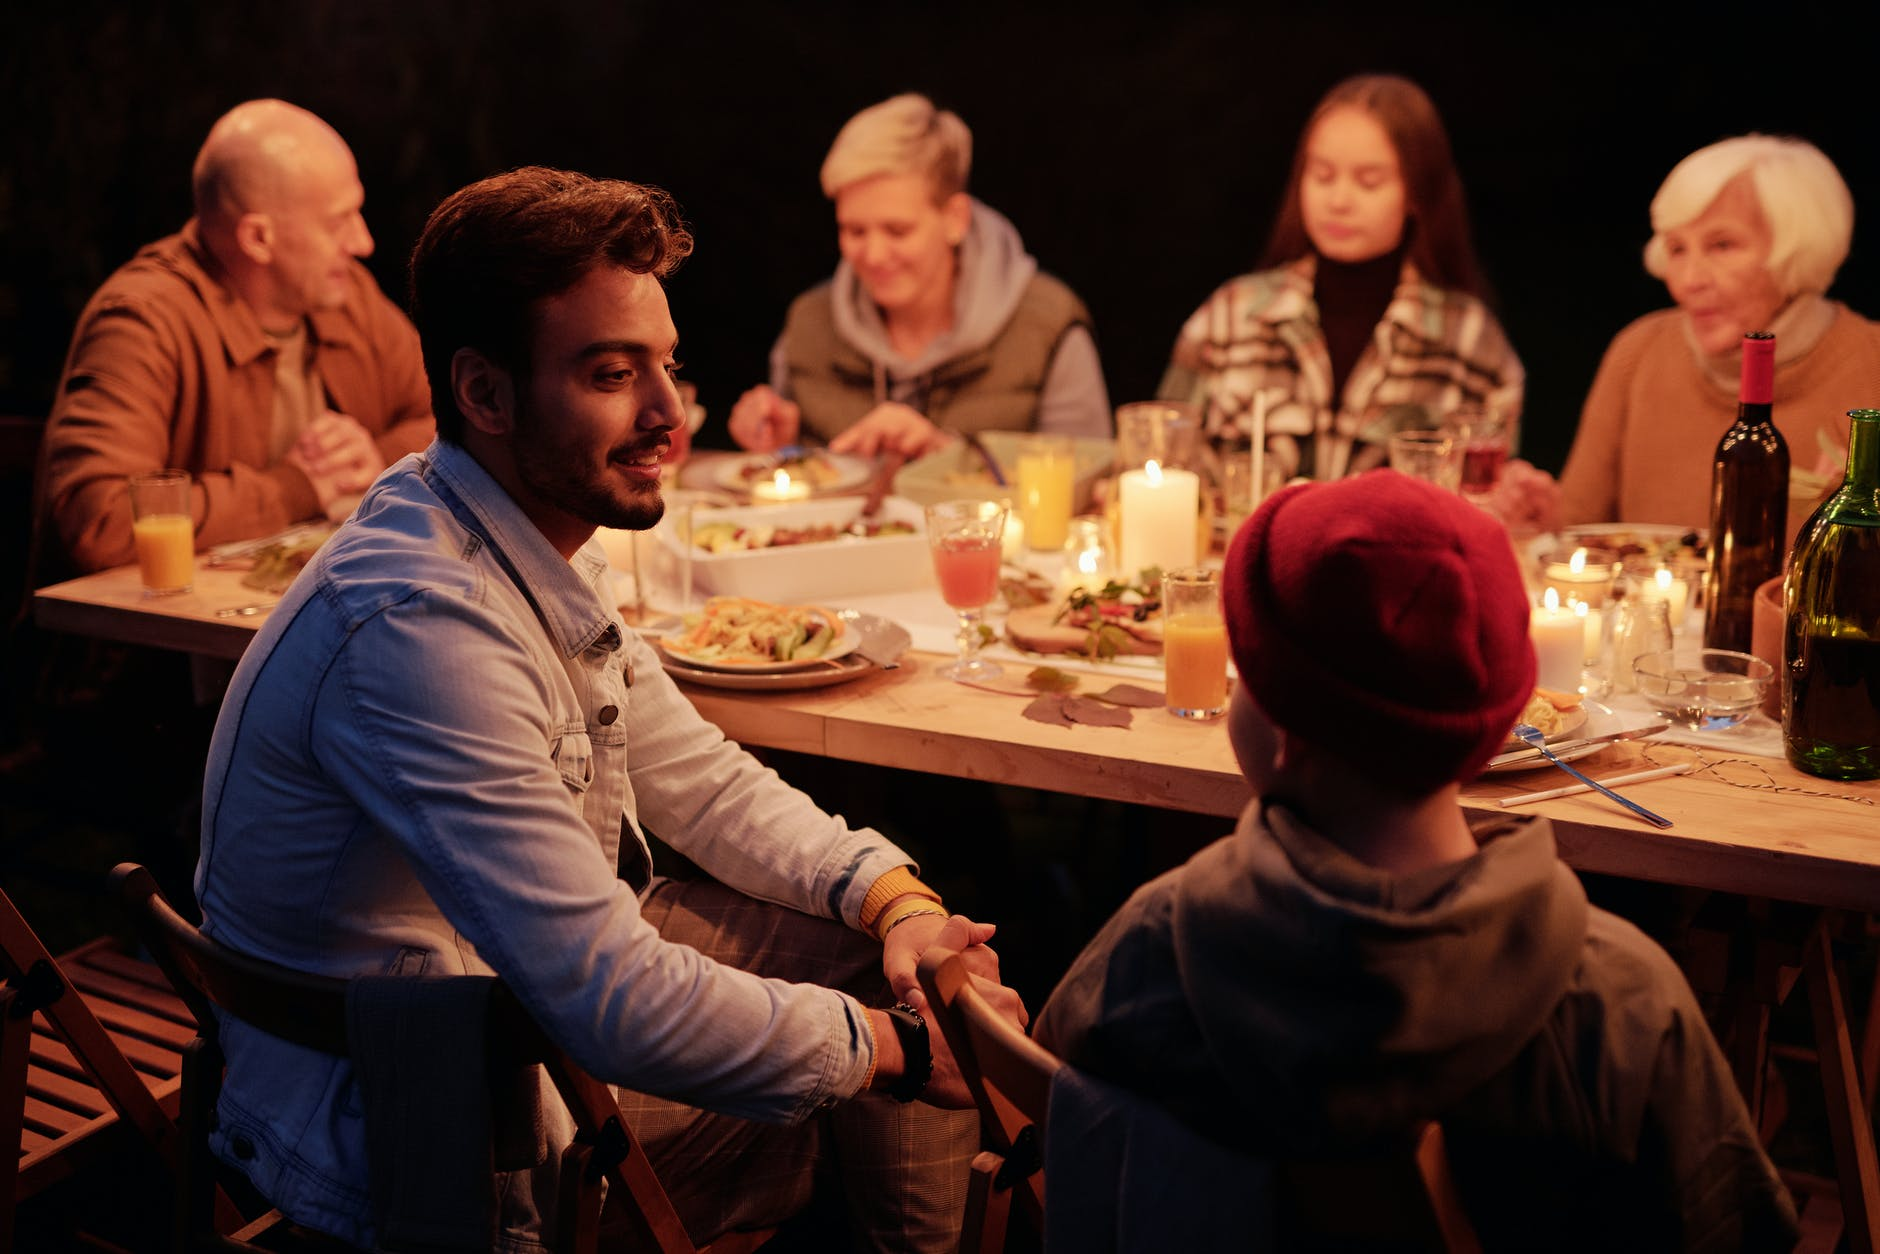 friends gathering at dinner in night garden and chatting